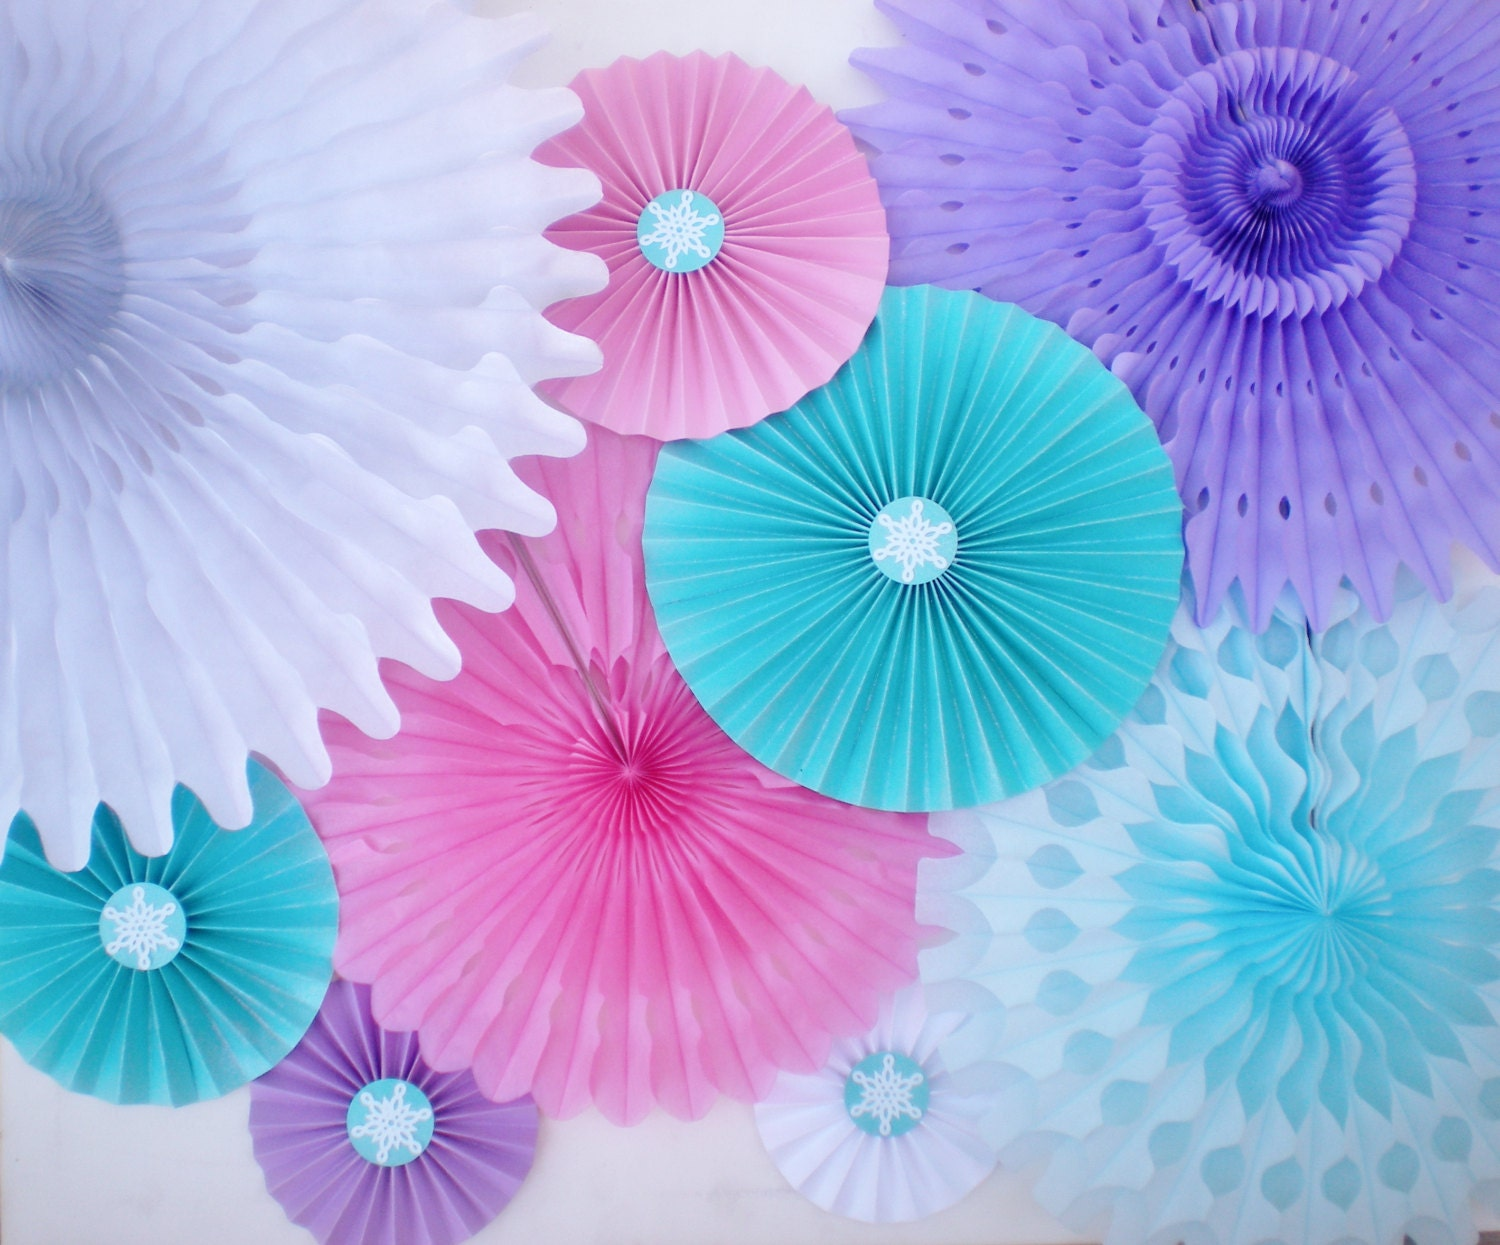 Frozen party backdrop tissue fans and paper rosettes pink | Etsy